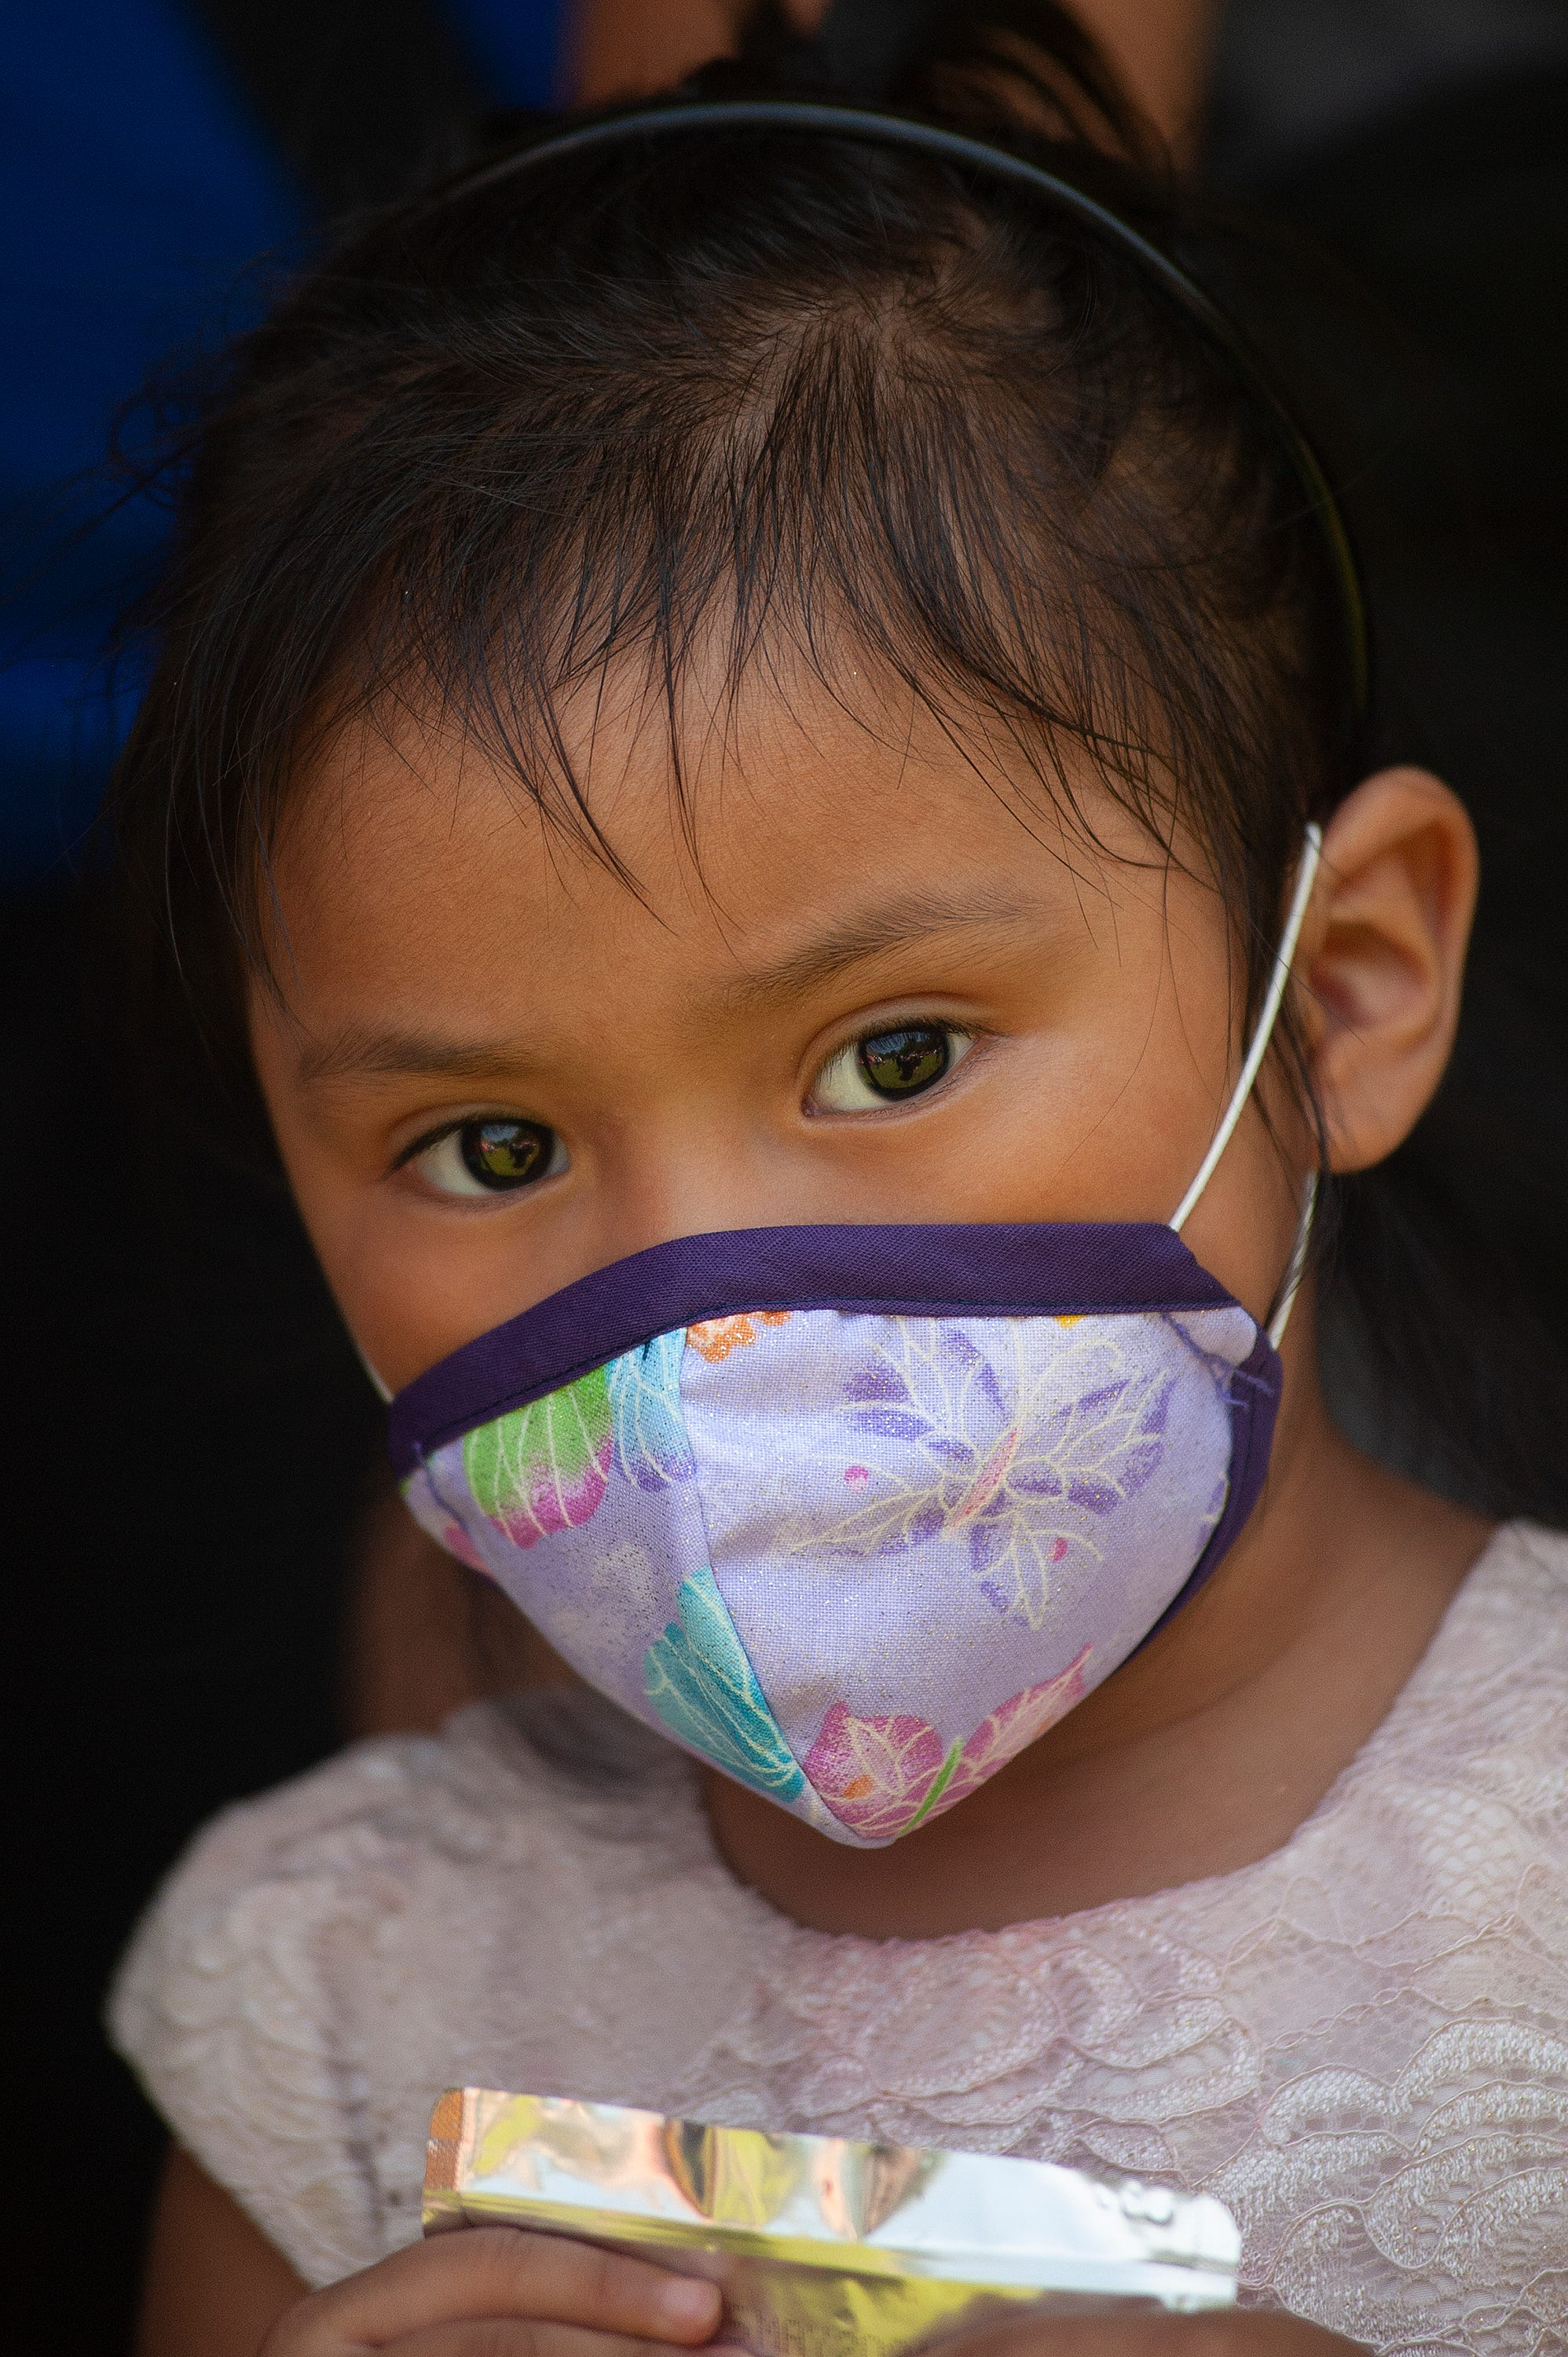 Estrella Gabriel Domingo, 3, of Forest, Miss., wears a face mask while at a school supply distribution event hosted by nonprofit El Pueblo to help immigrant families struggling to provide for their families in the aftermath of ICE raids in August 2019 and amid the coronavirus pandemic.